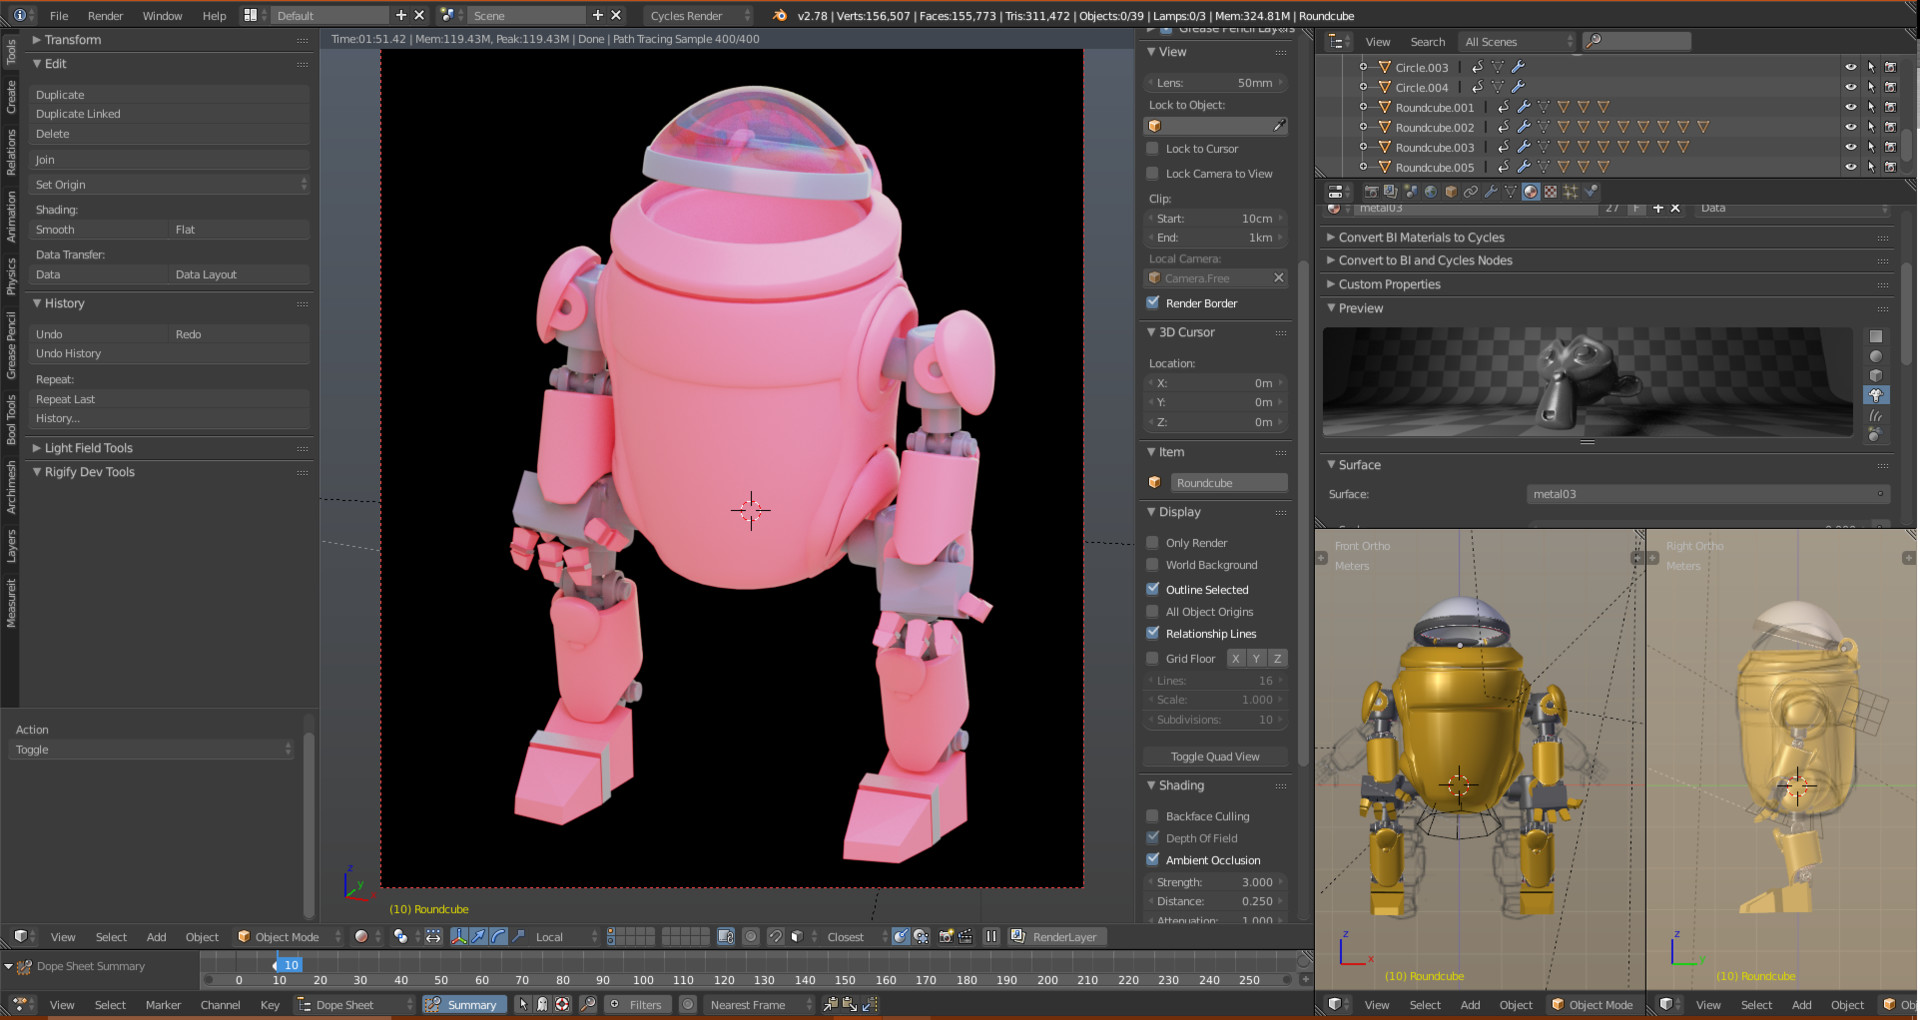 mecha 3D model in Blender